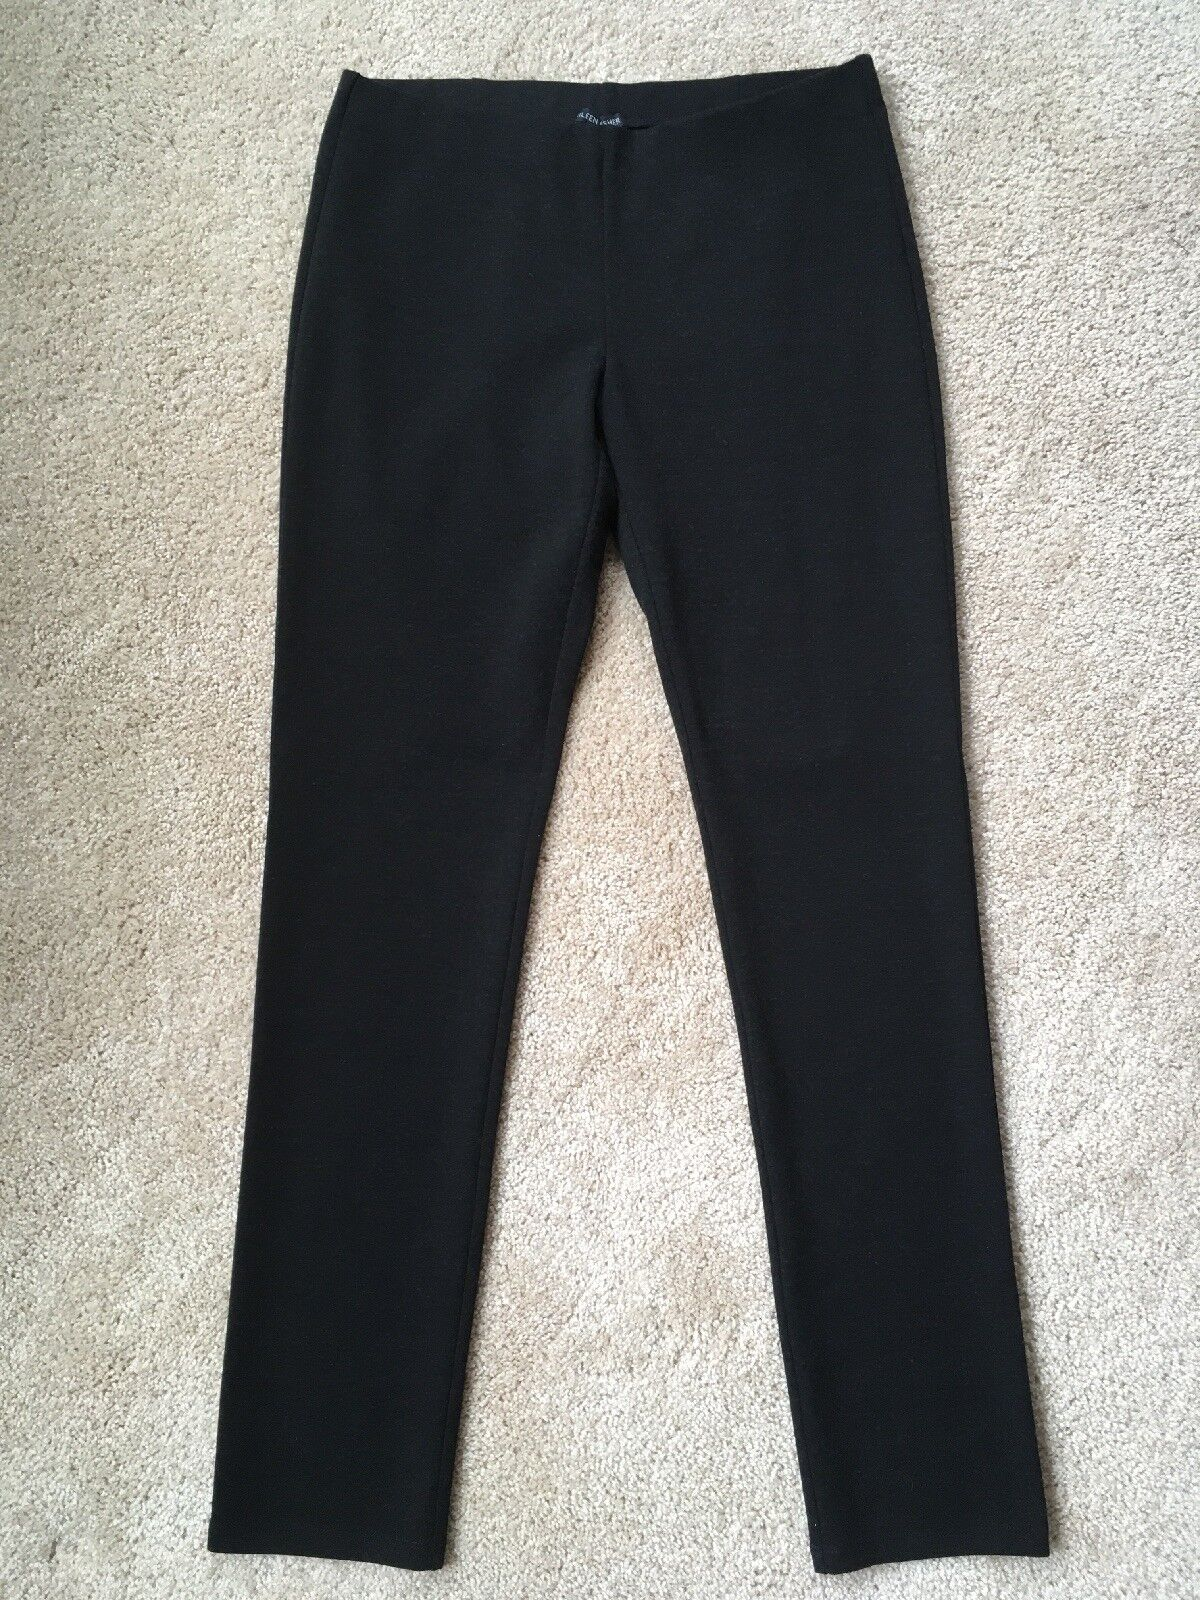 NWT EILEEN FISHER Charcoal Slim Pant Melange Viscose Stretch Pointe Sz Small